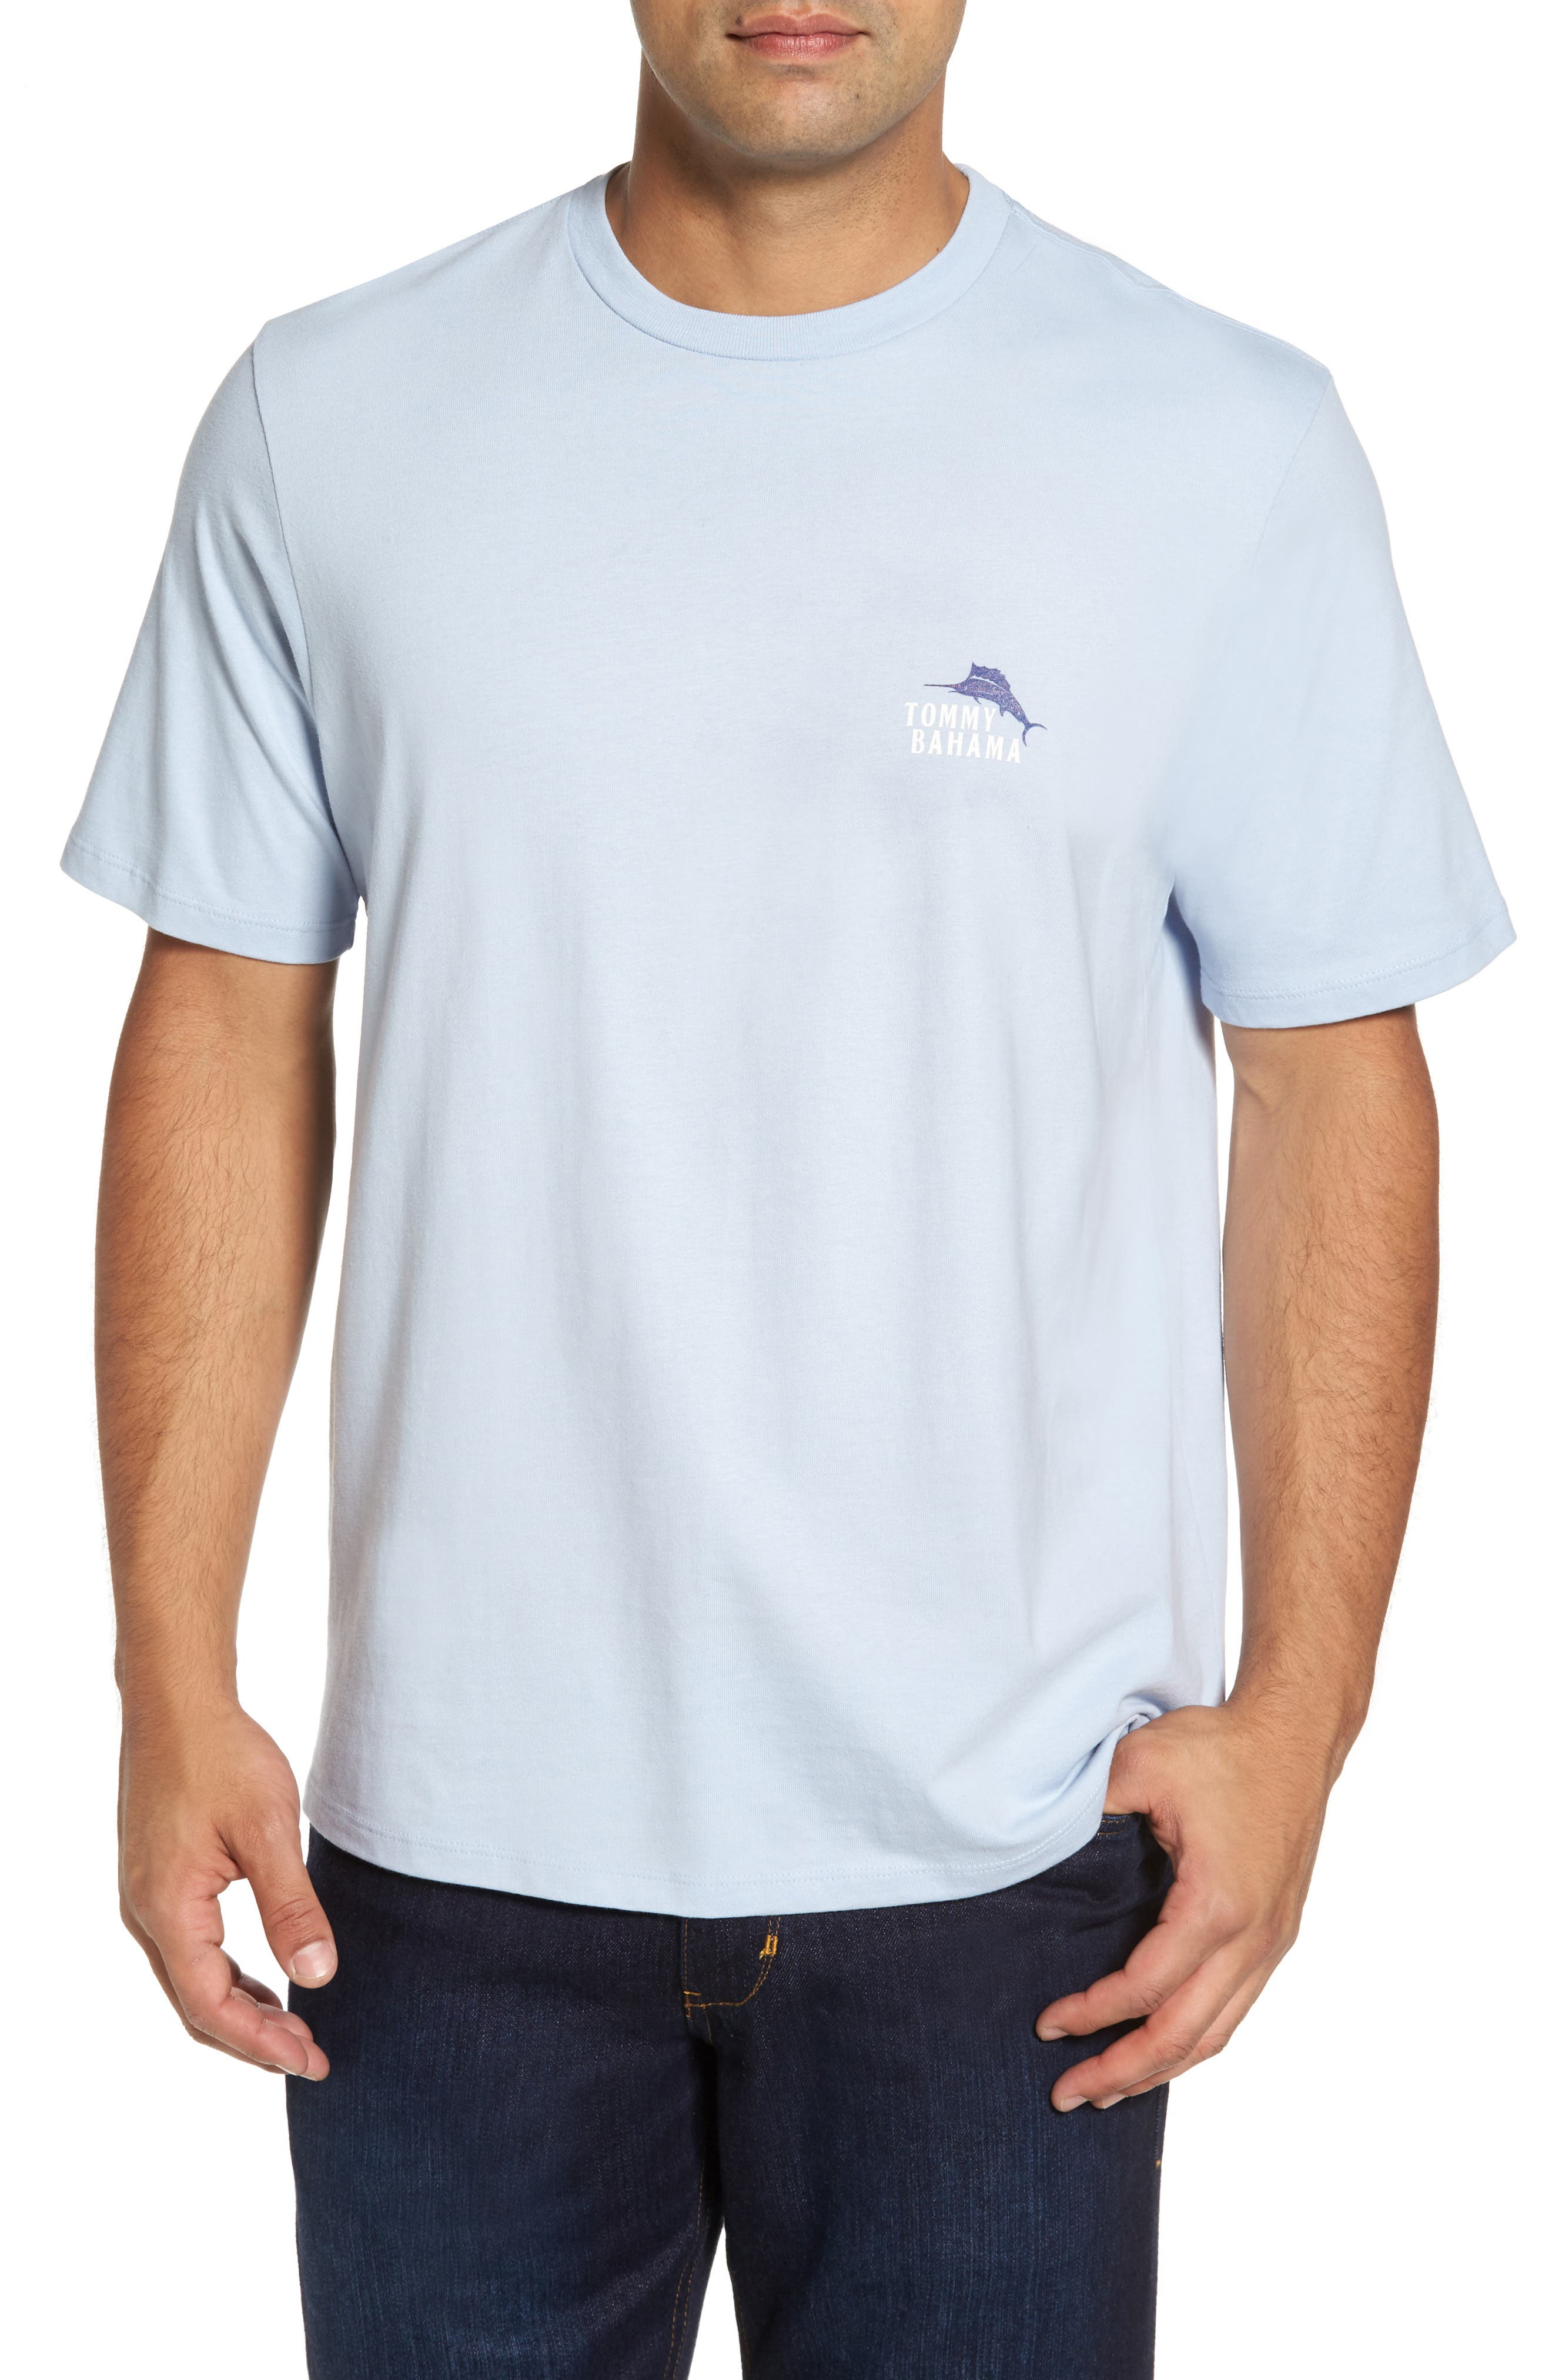 Main Image - Tommy Bahama Casting Call Standard Fit T-Shirt